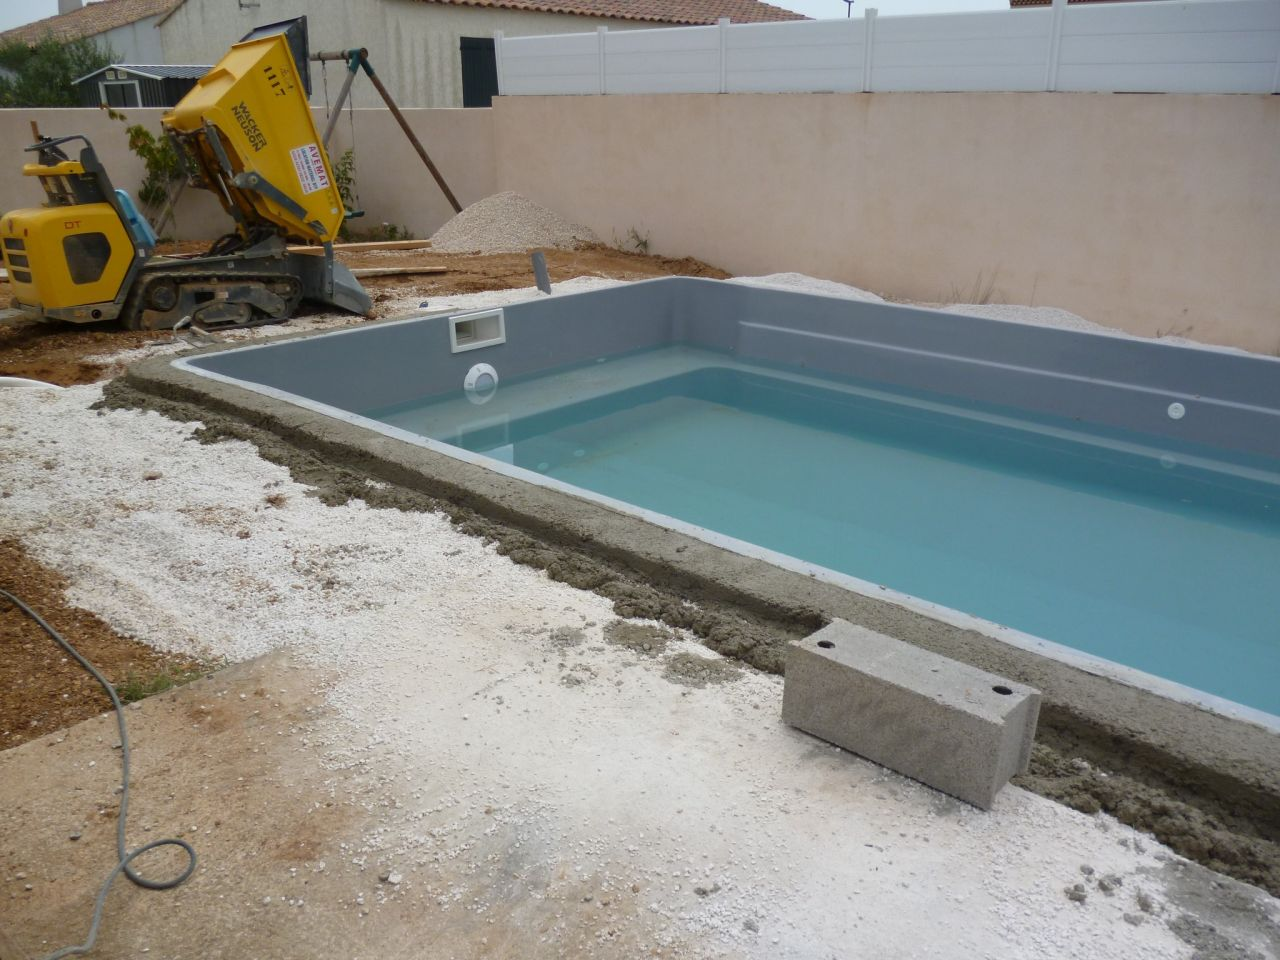 Photo ceinture b ton construction pose de la piscine for Forum construction piscine 56